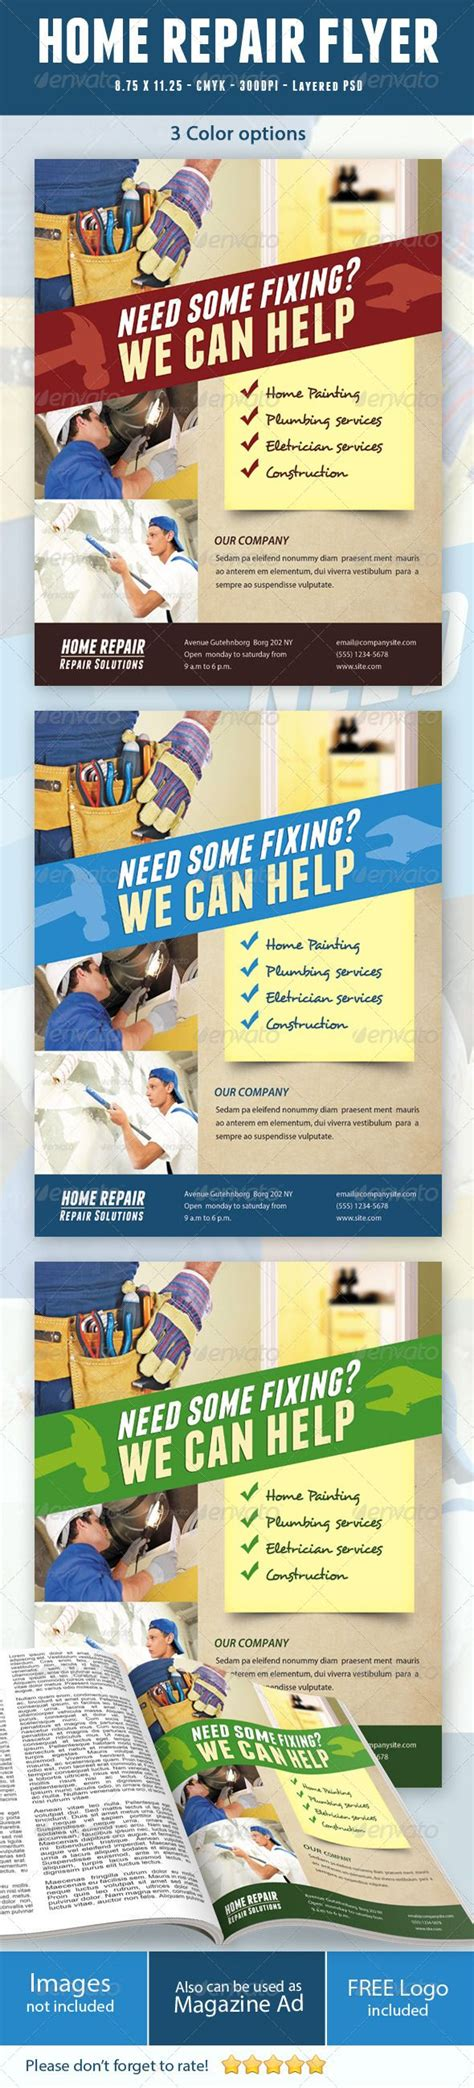 Home Repair Flyer Graphicriver Home Repair Flyer This Flyer Can Be Used In Any Business Like Home Improvement Flyer Template